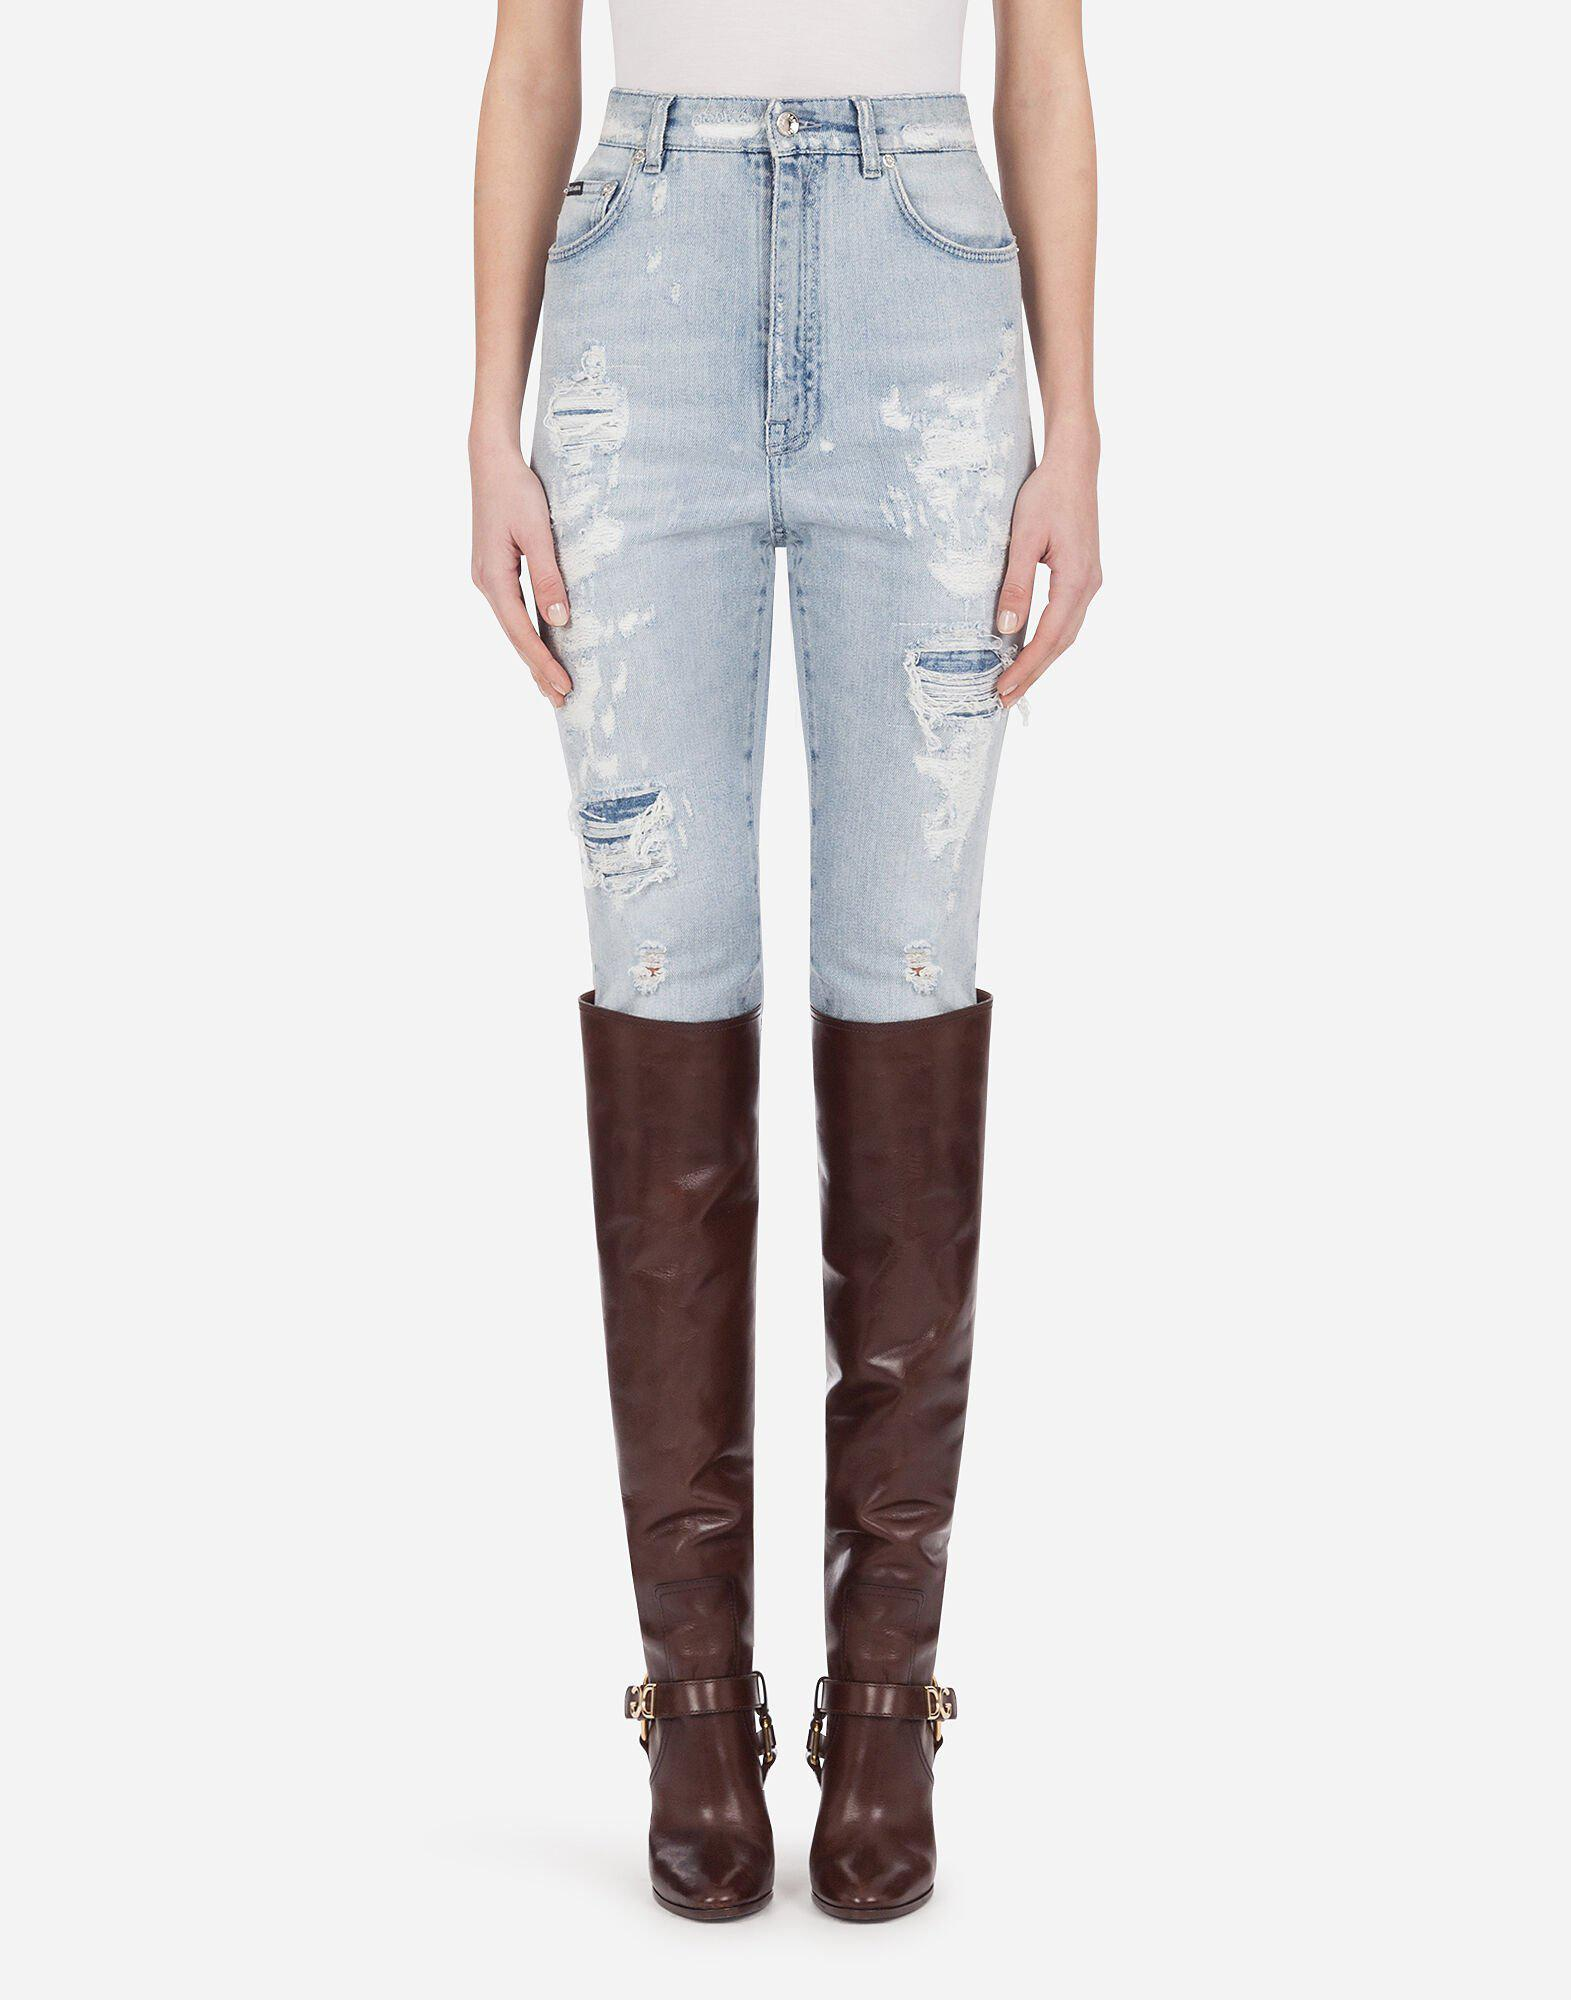 Audrey jeans in light blue denim with rips